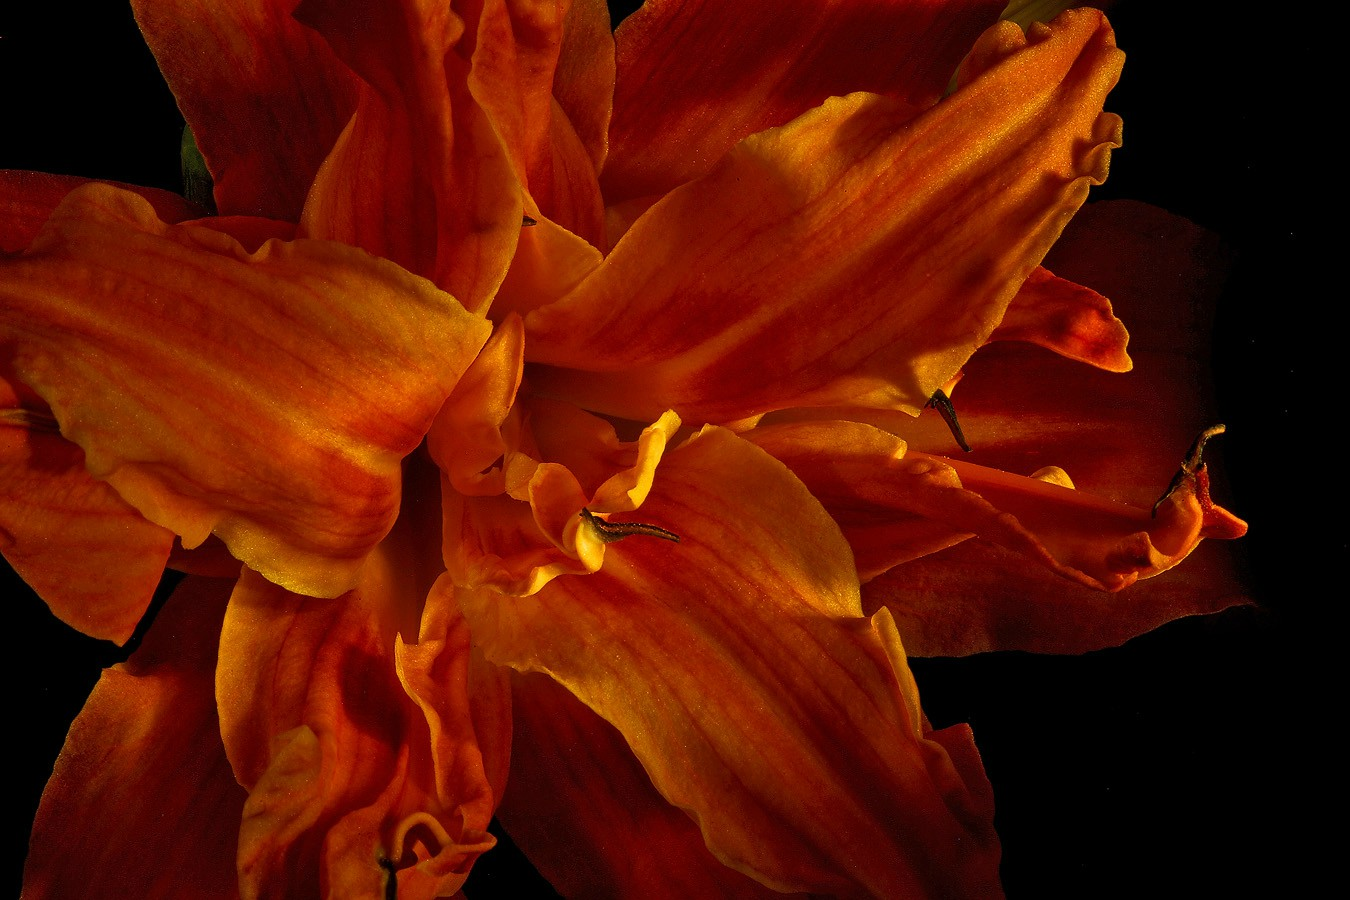 uncommon day lily img aw author sava gregory and verena